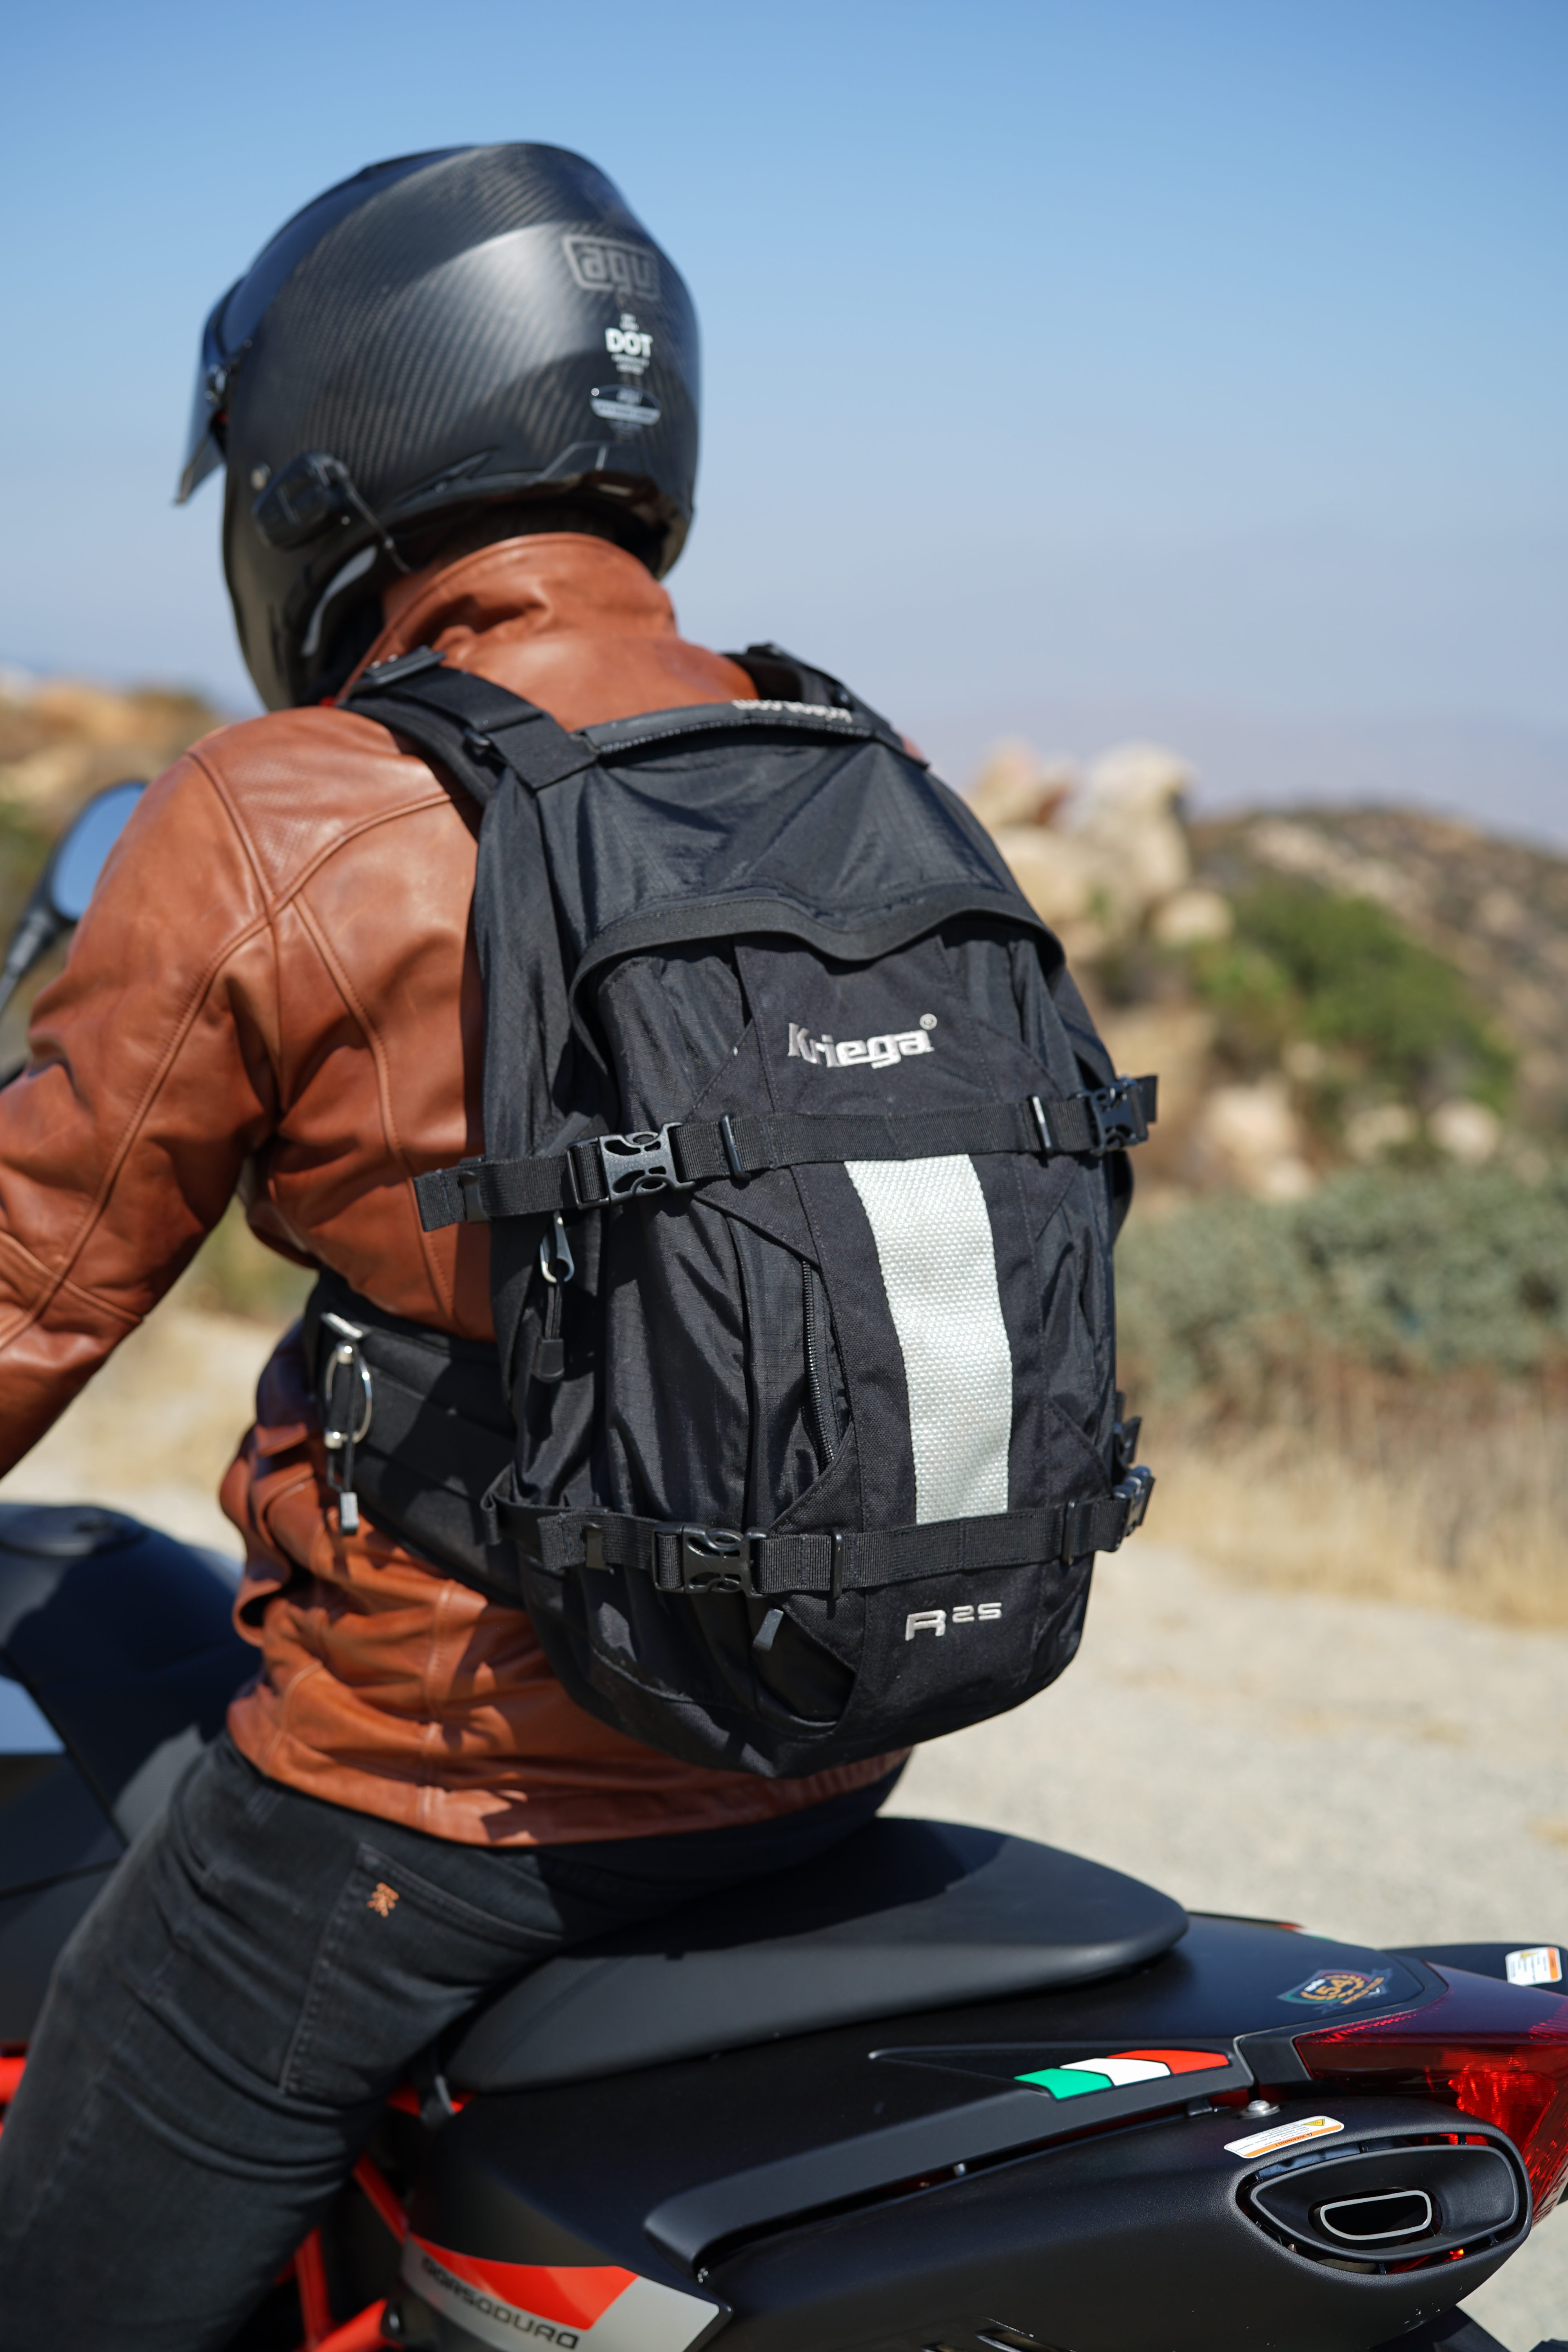 Kriega R25 backpack review